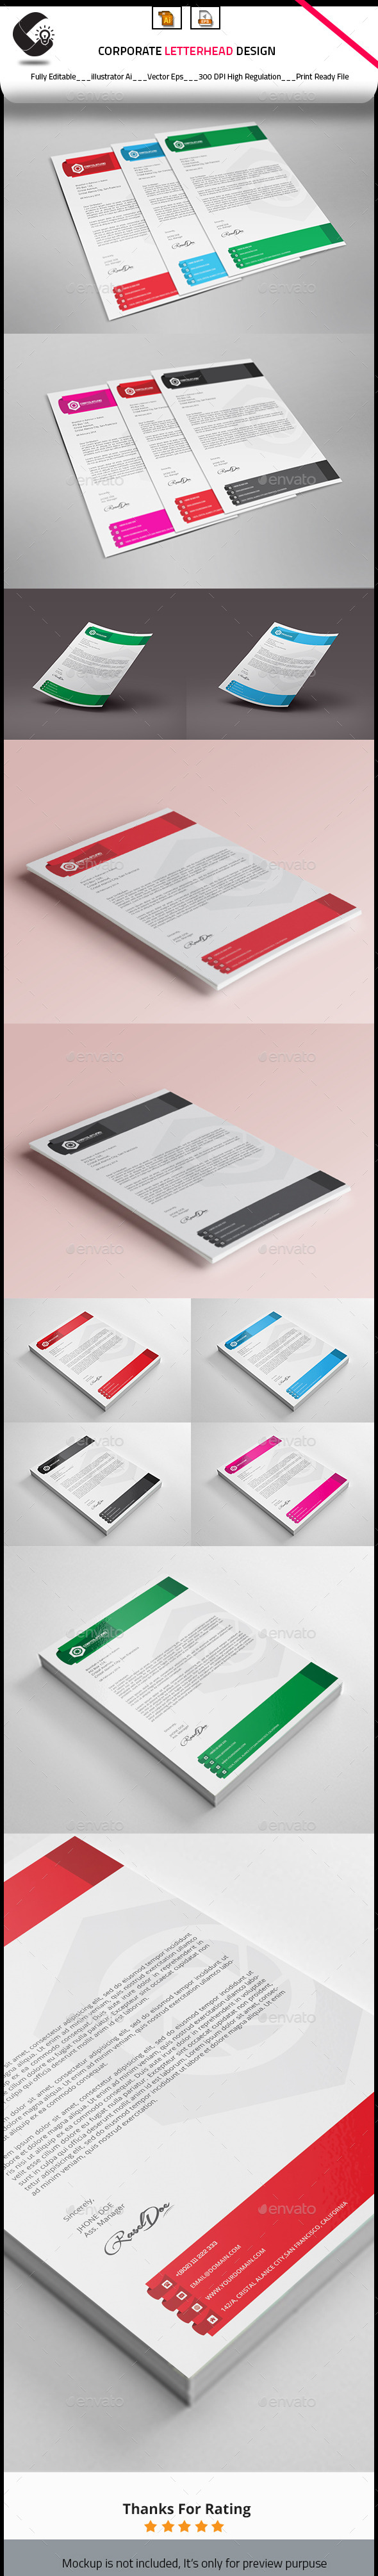 GraphicRiver Corporate Letterhead Design 10360913